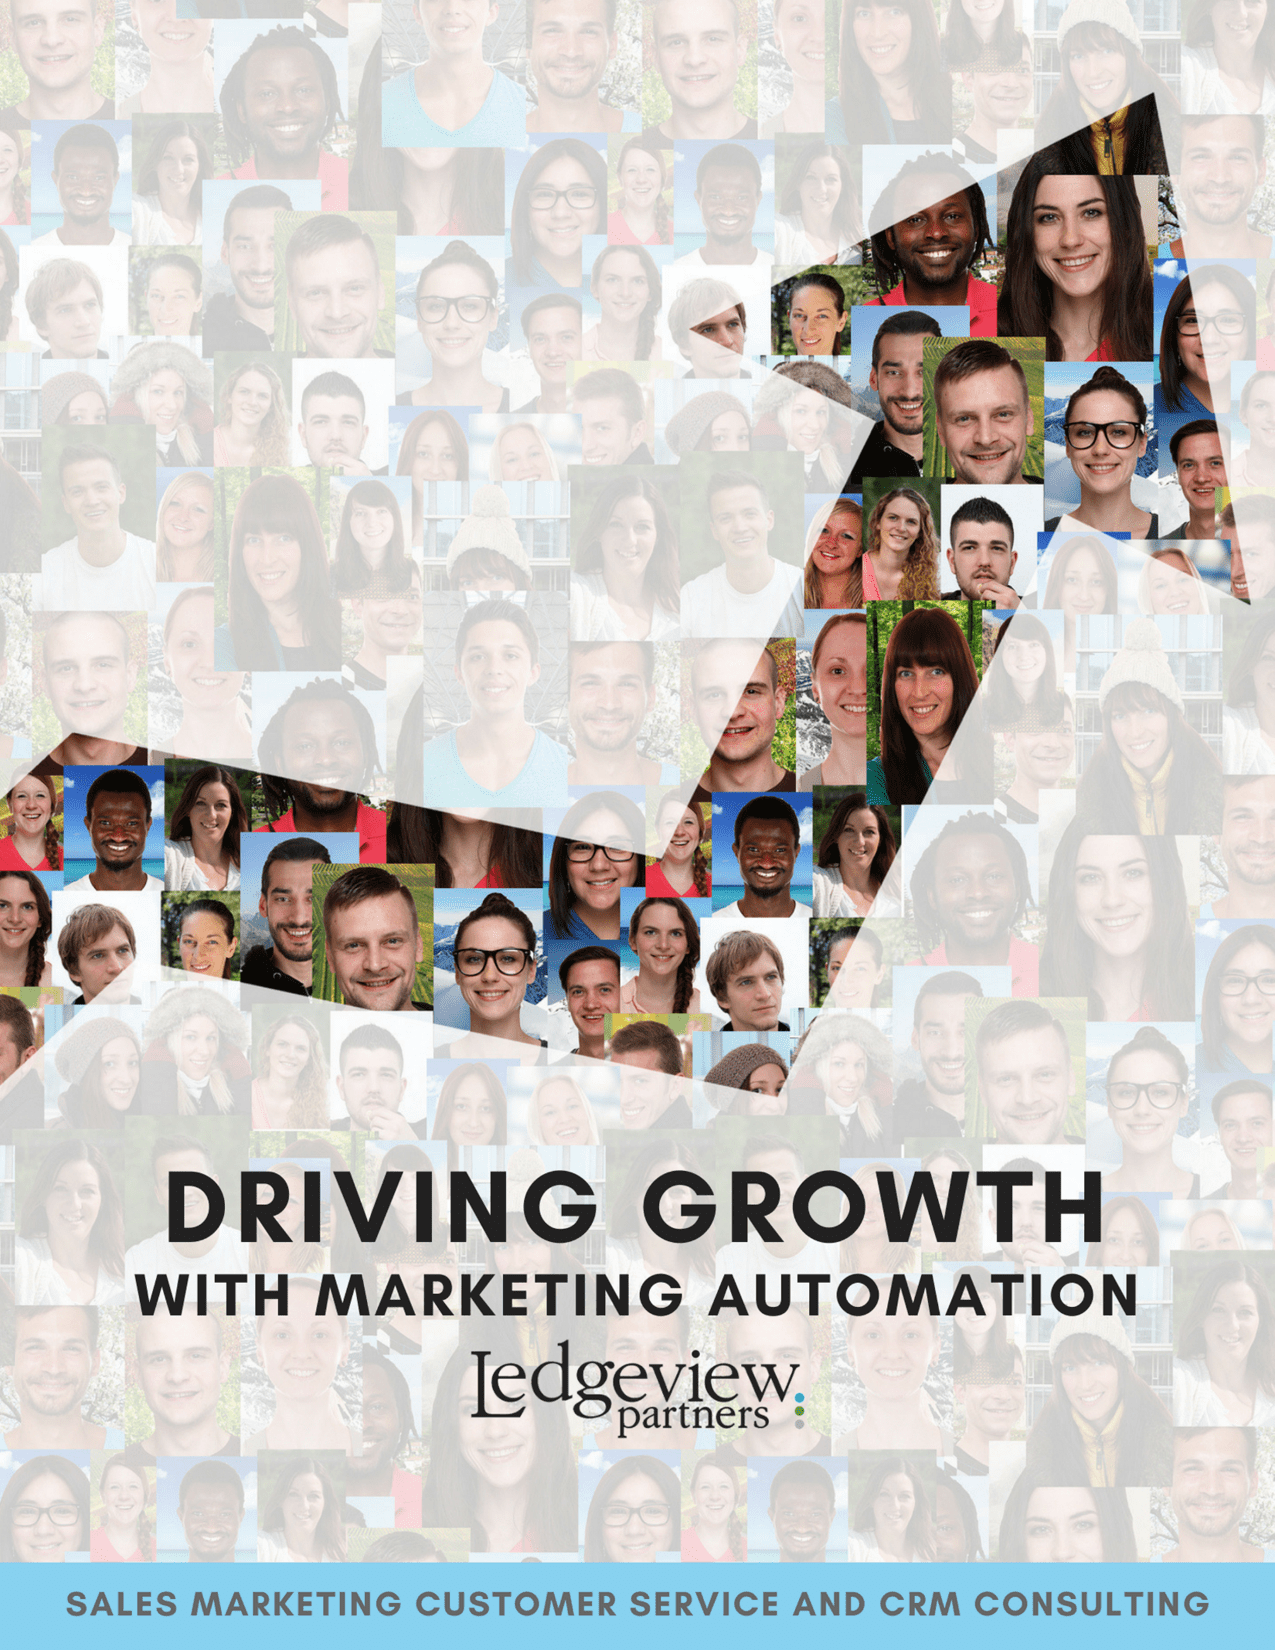 Ebook driving growth with marketing automation ledgeview partners ledgeview partners ebook fandeluxe Gallery